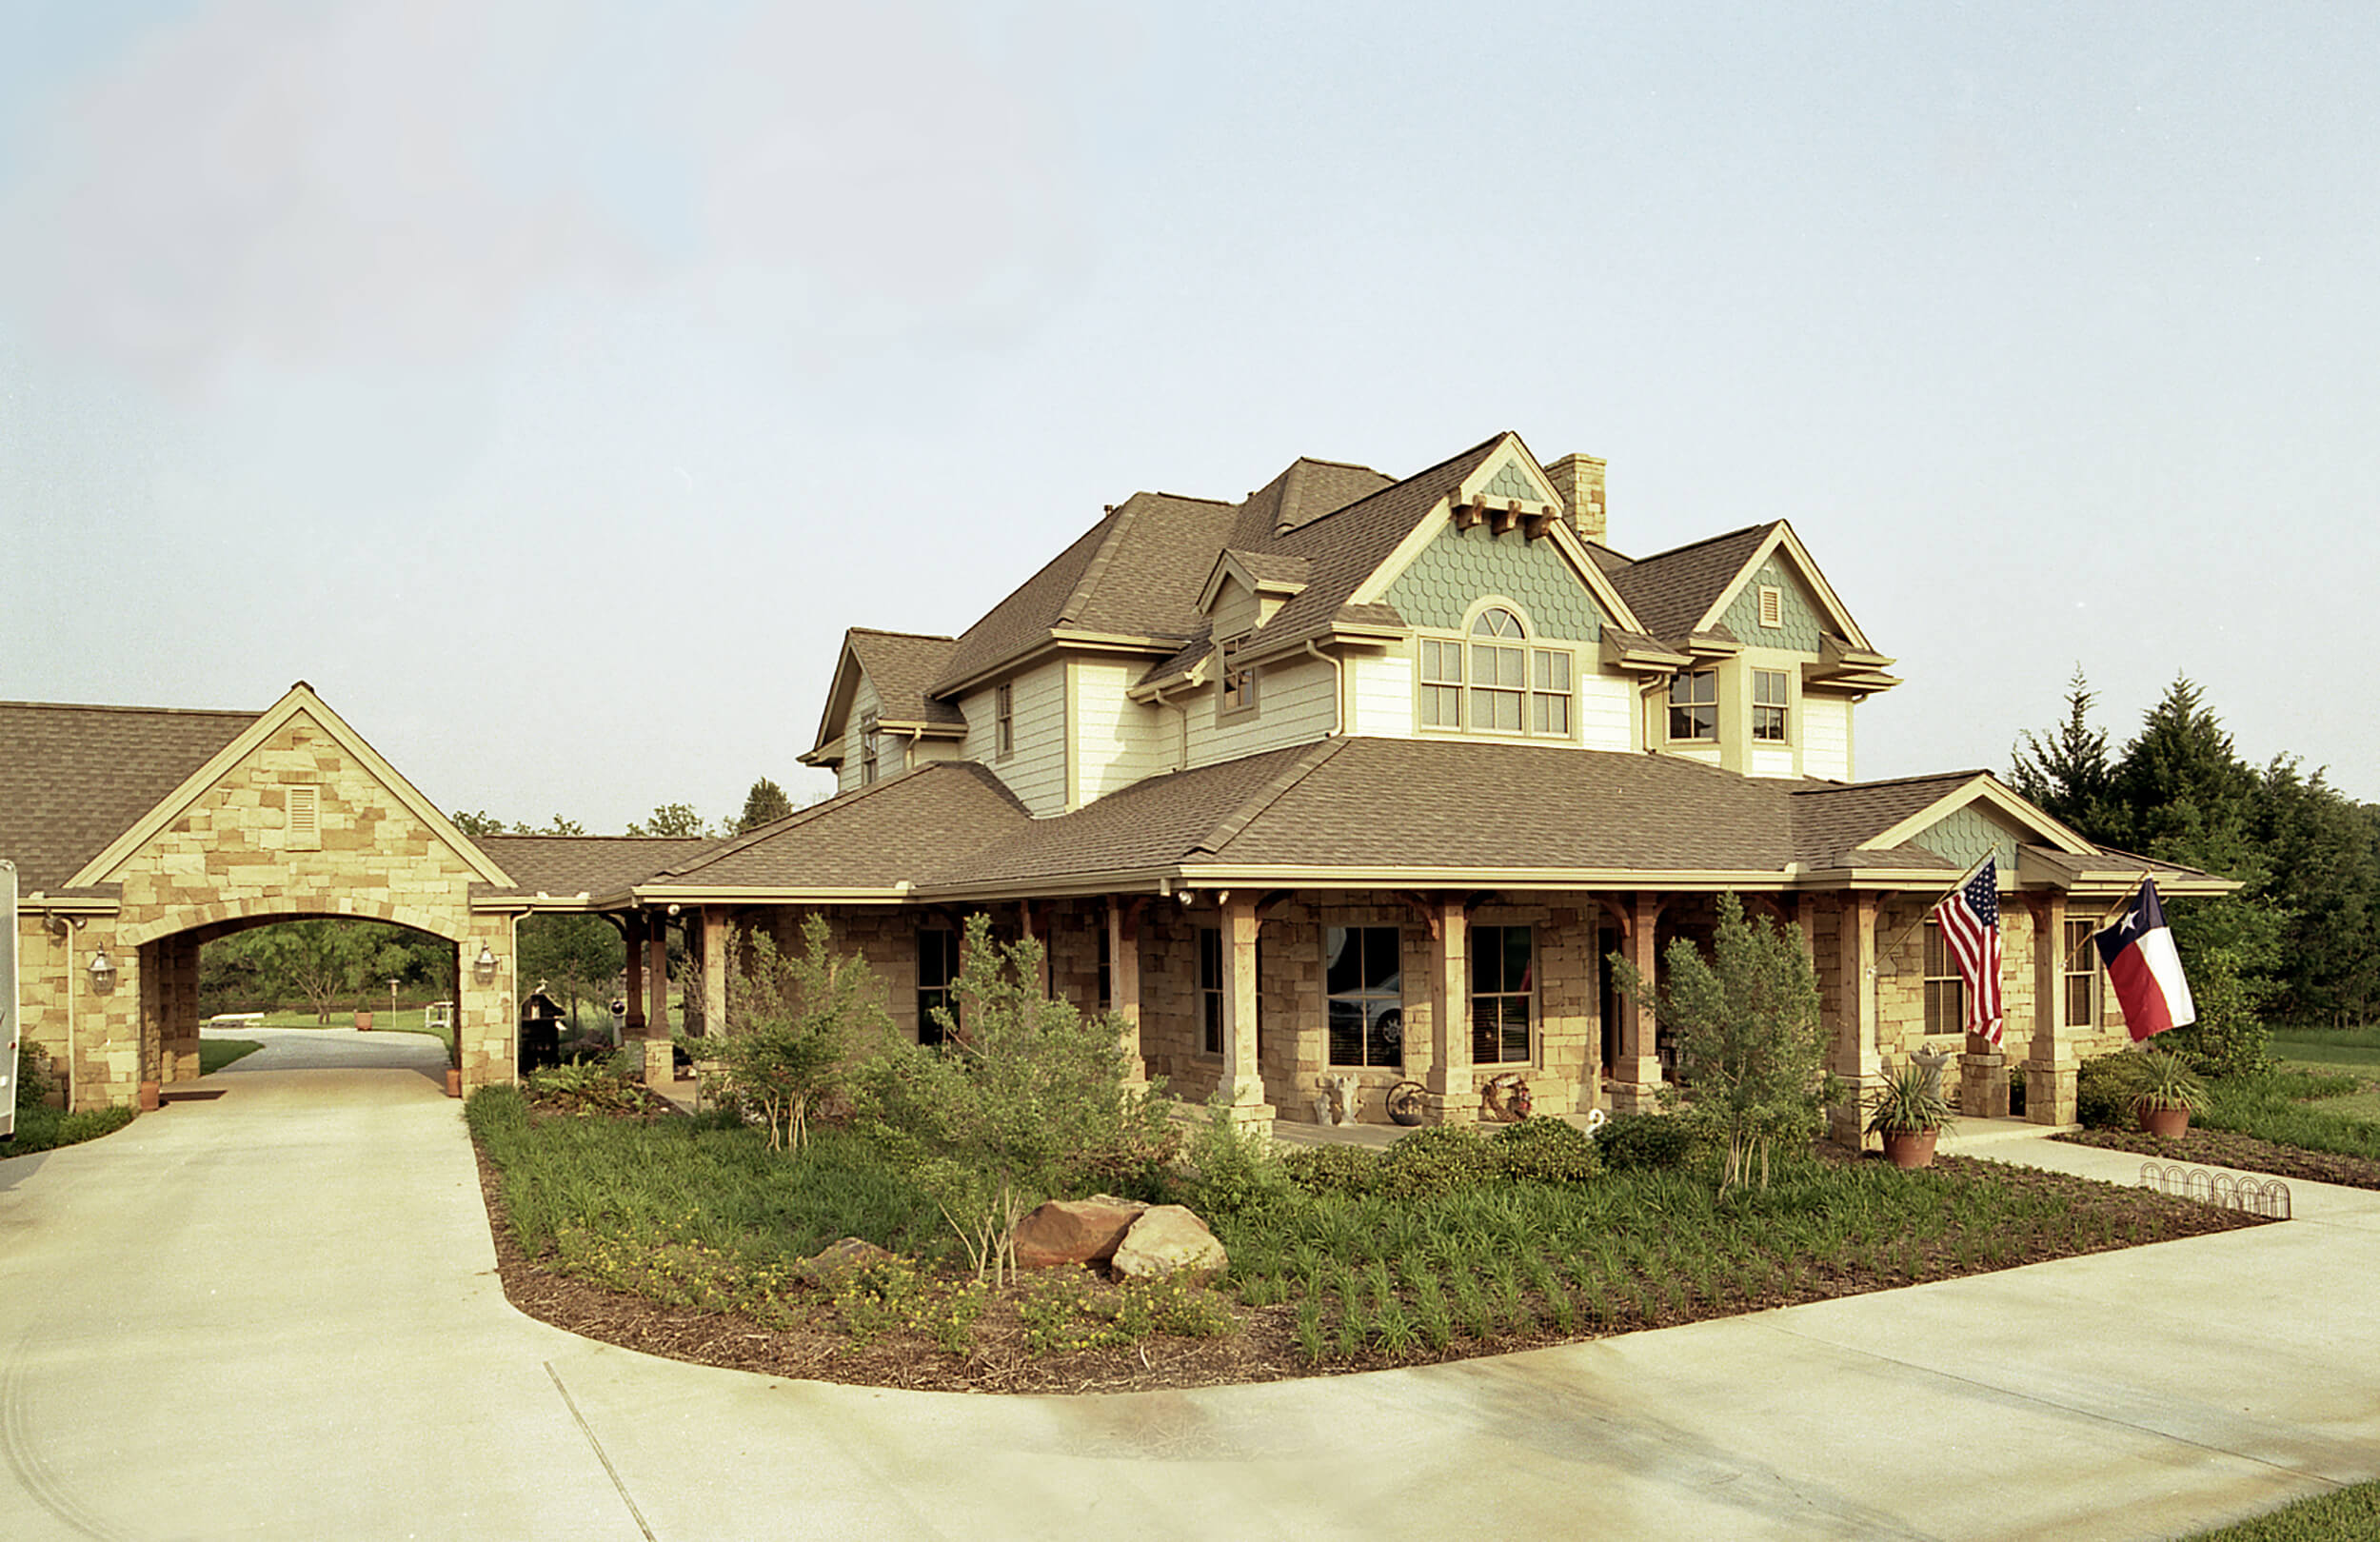 Steve_Bumpas_Custom_Homes_Durbin-01.jpg